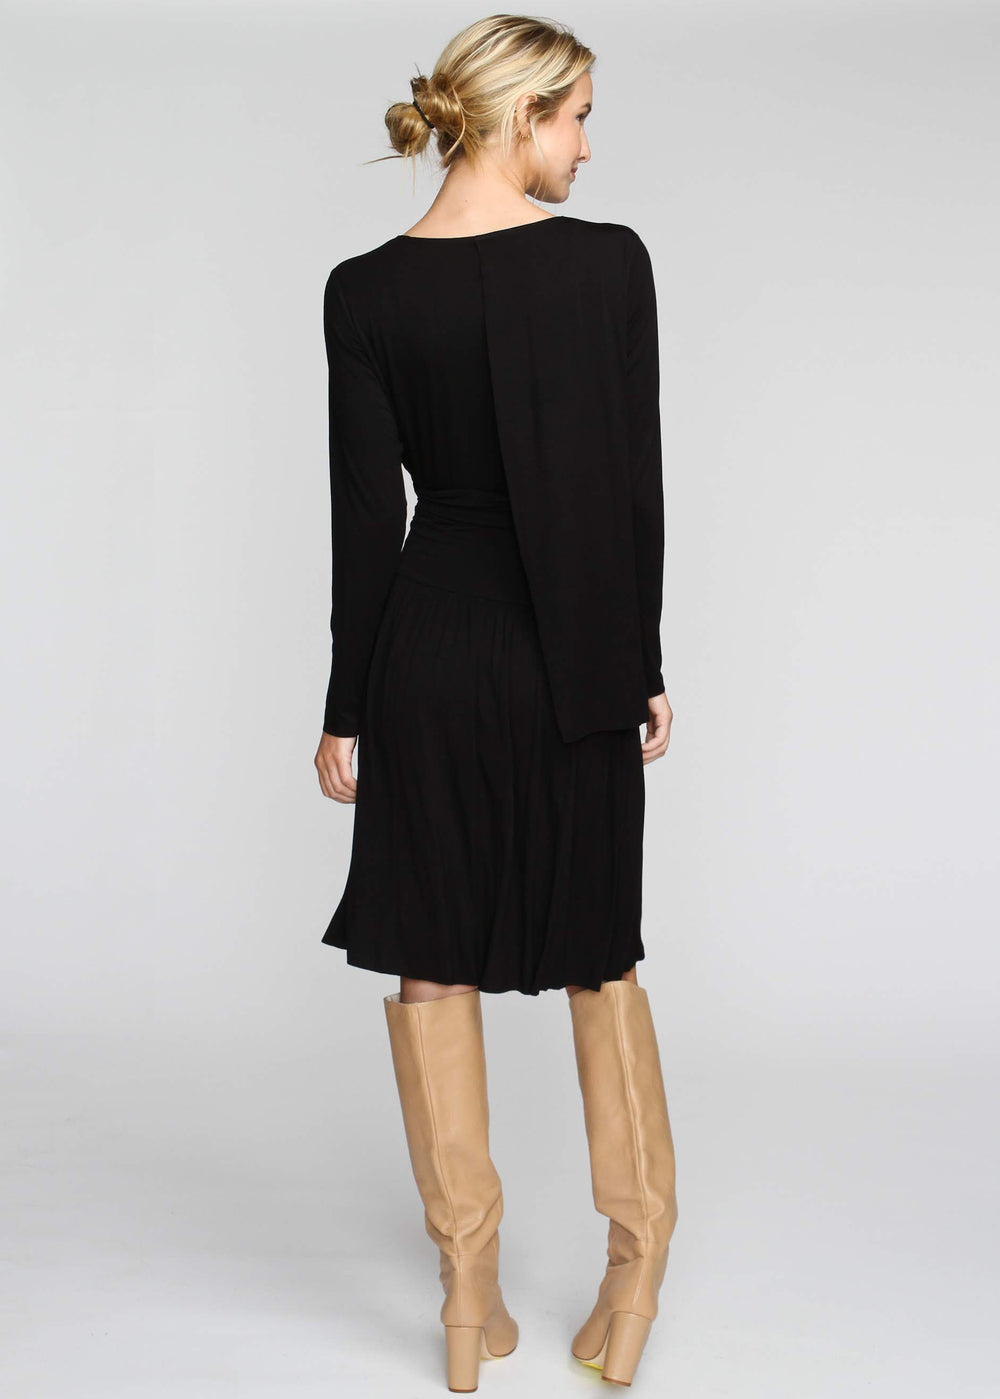 Drape T - Black - The Frock NYC